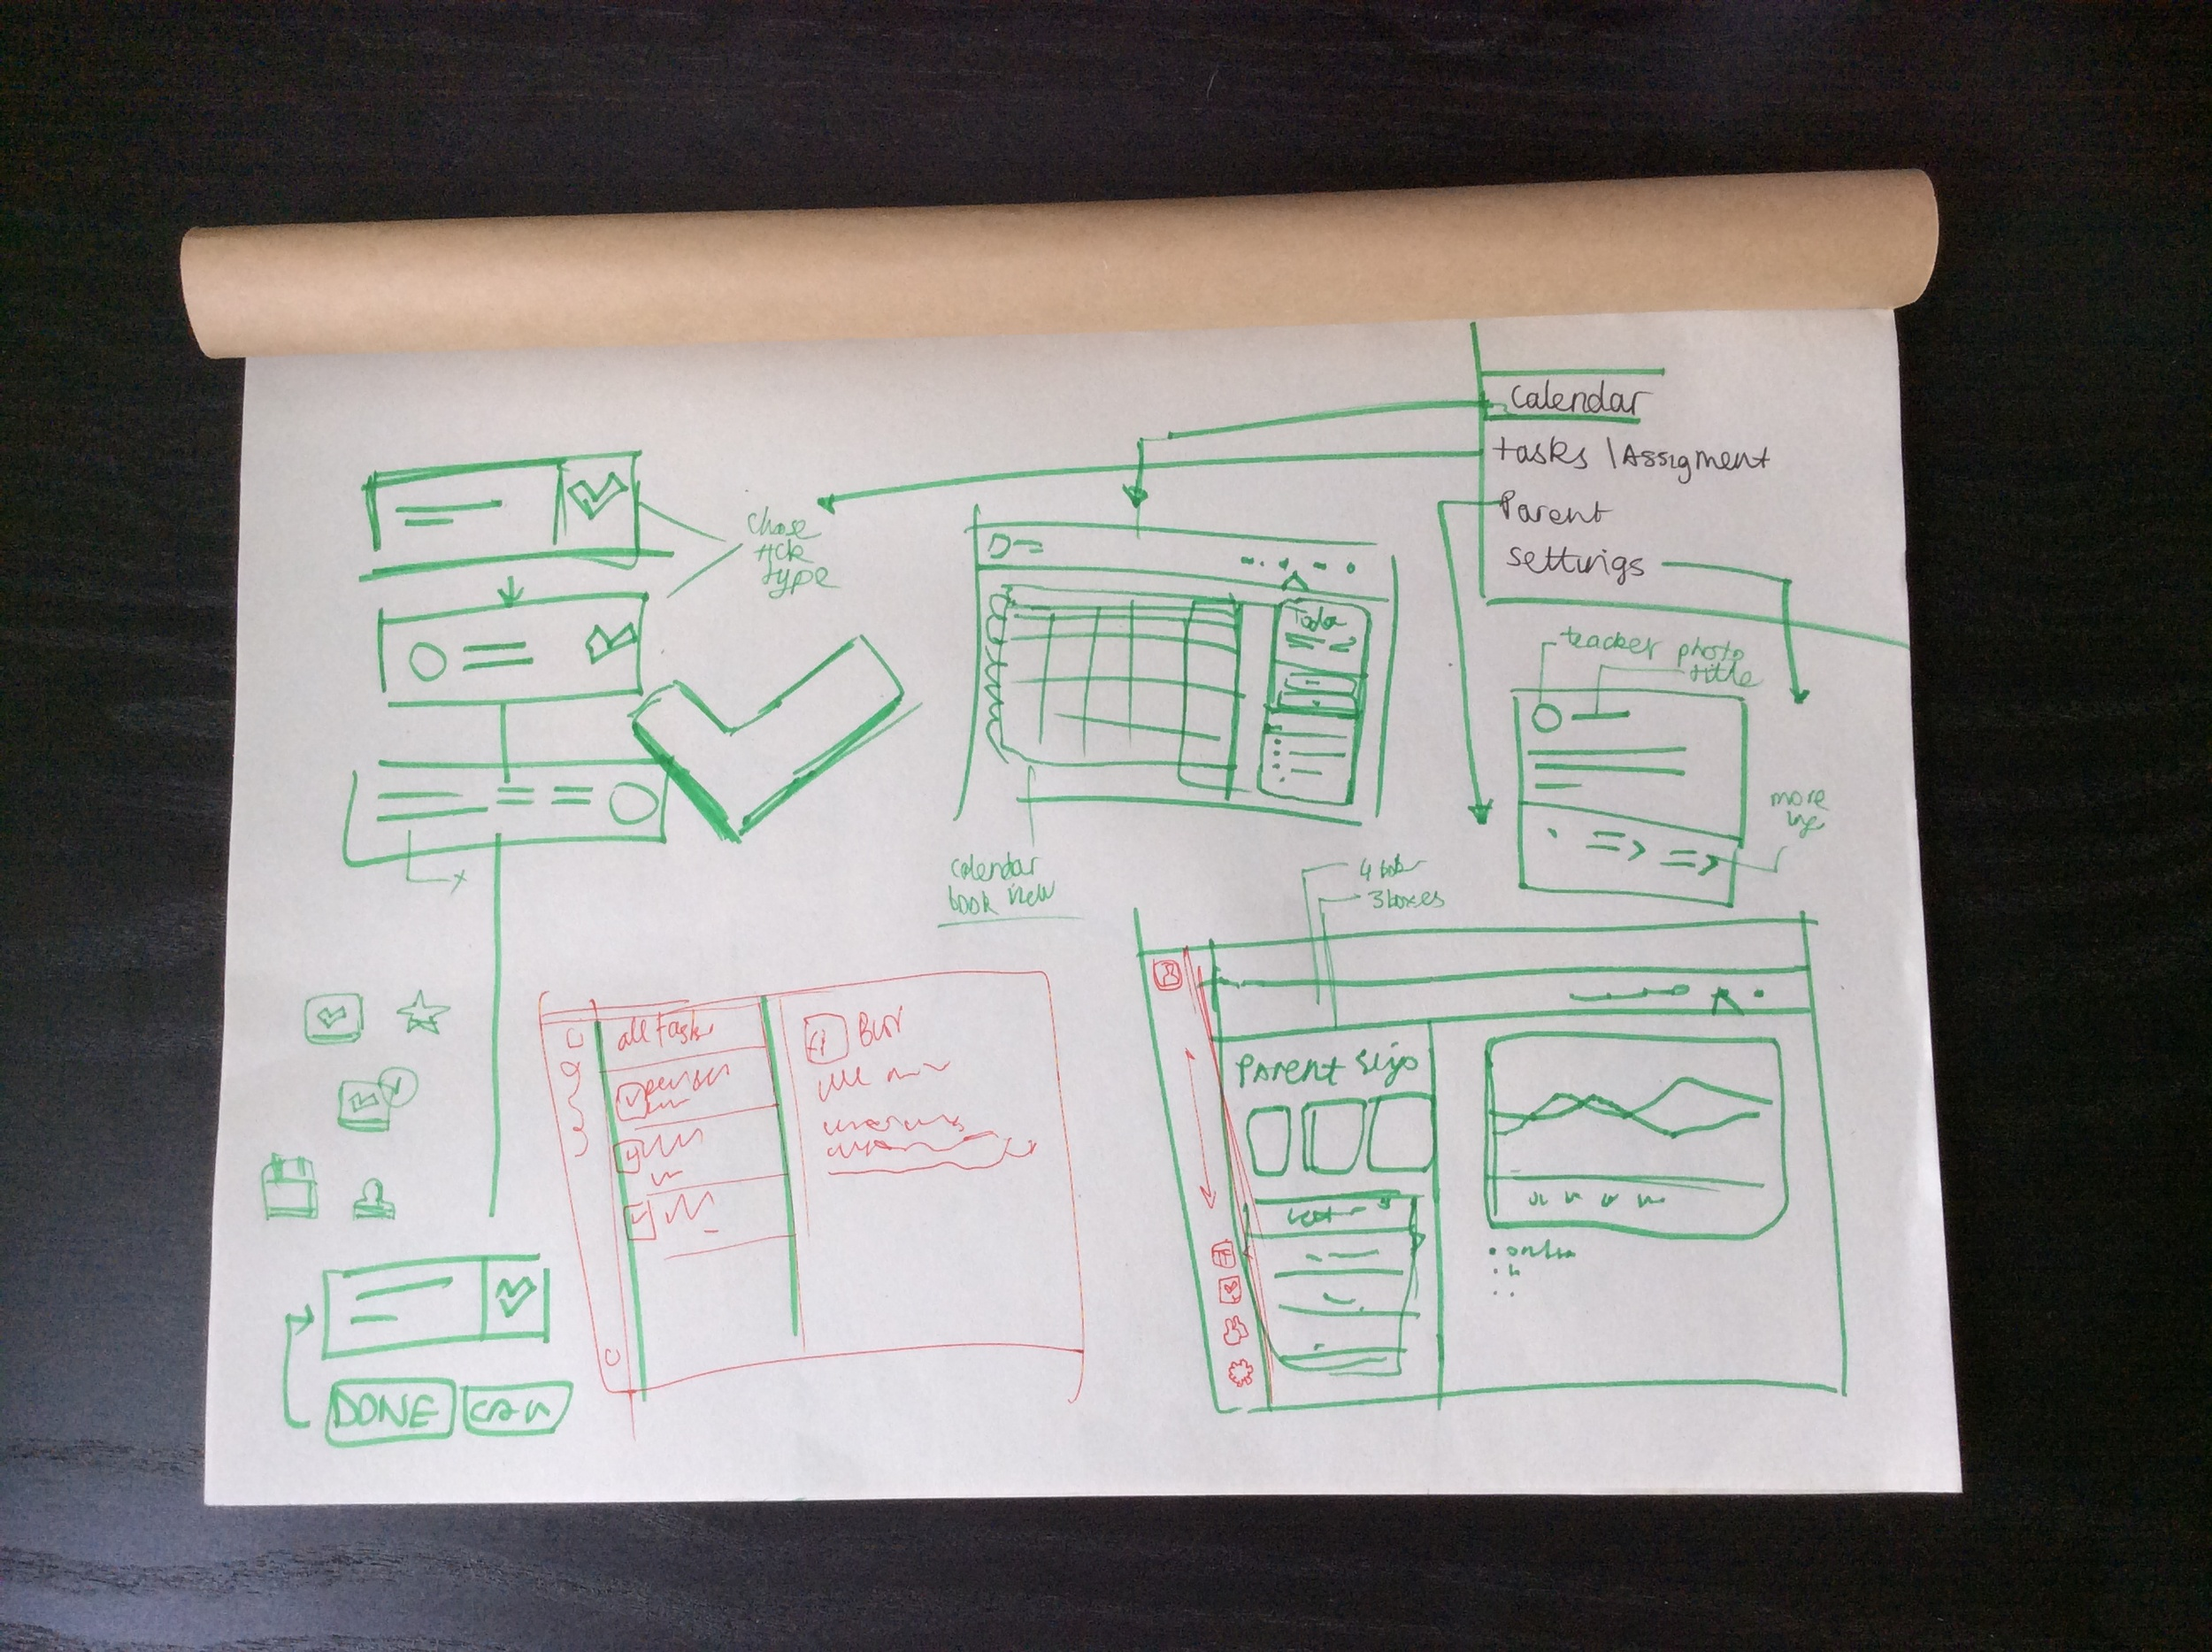 General sketching and planning for various elements of the app. Click to enlarge.